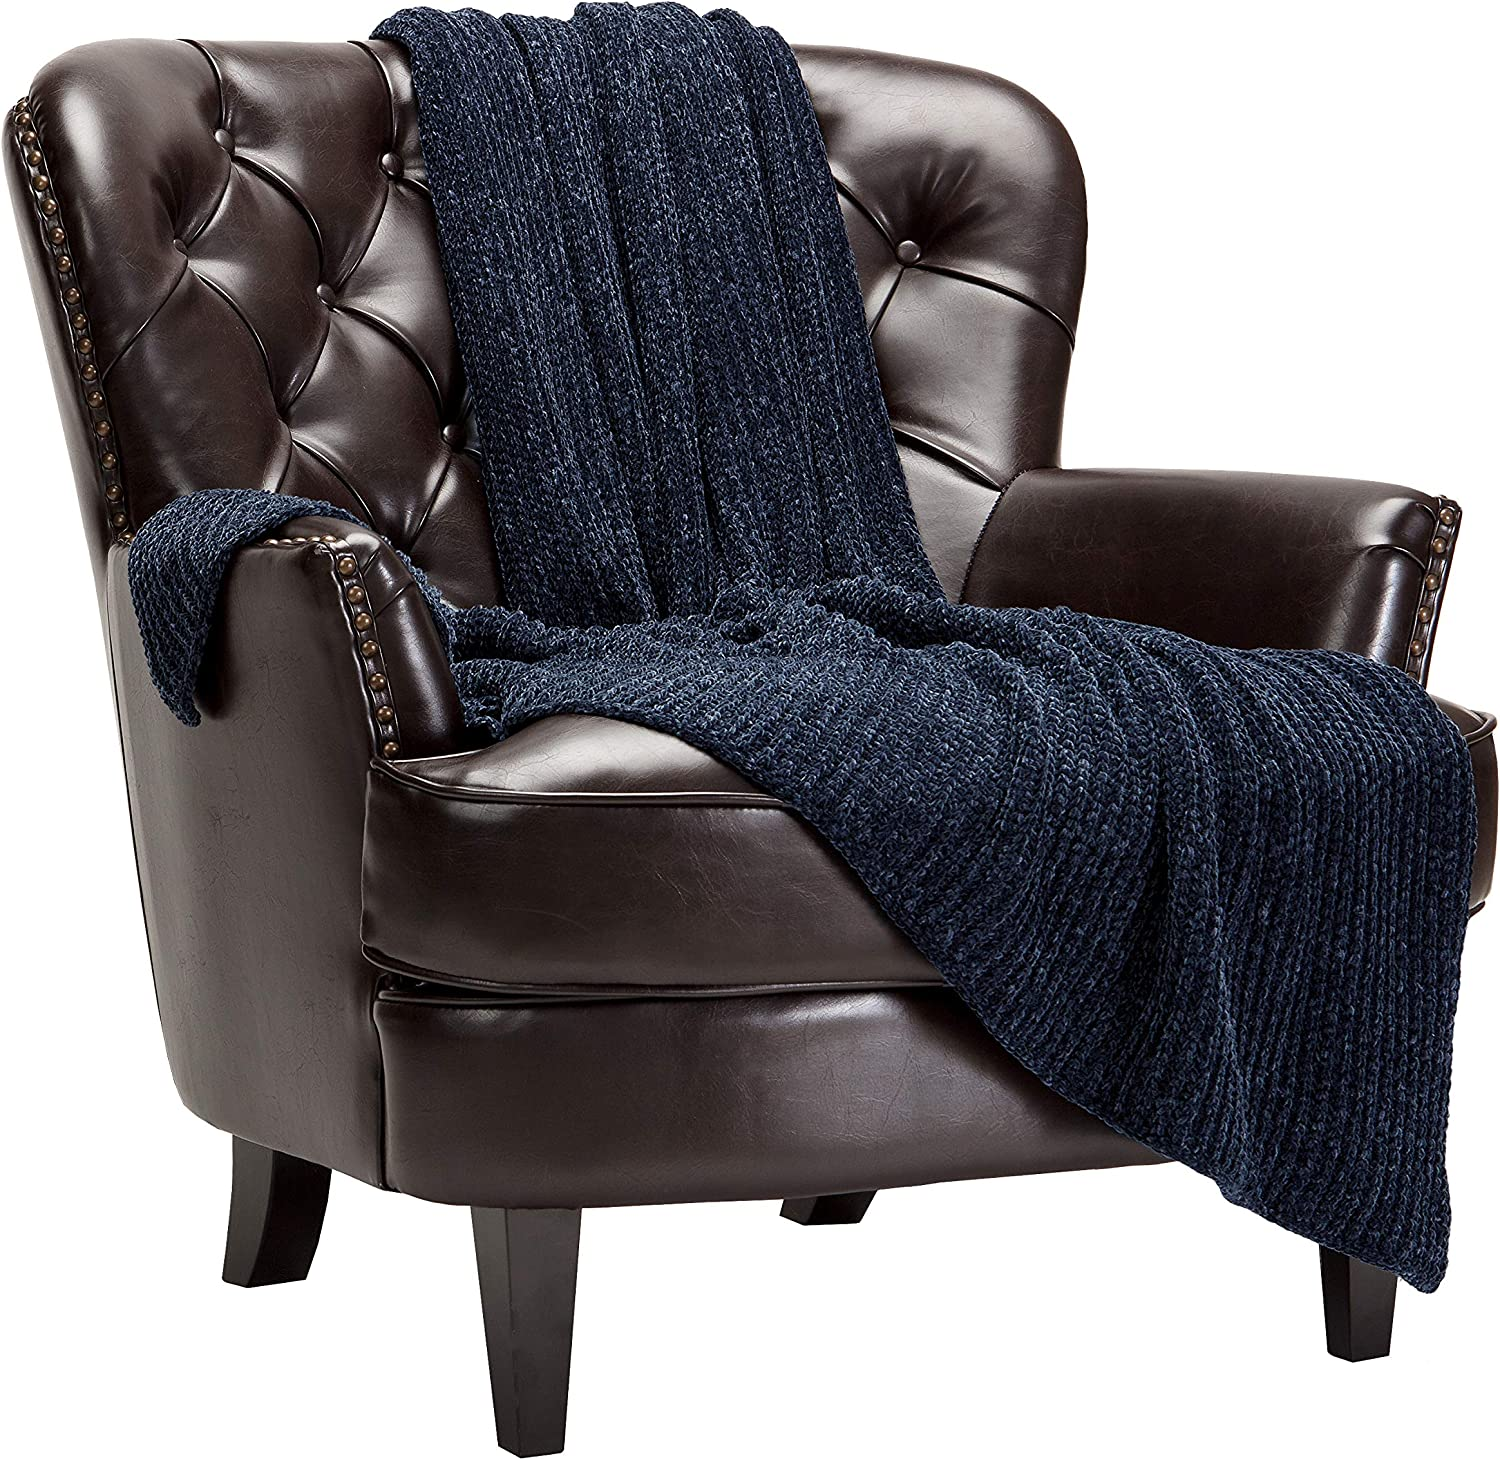 Chanasya Chenille Knit Super Soft Velvety Texture Throw Blanket - Cozy Classy Elegant Decorative with Subtle Shimmer for Sofa Chair Couch Bed Living Bed Room Dark Gray Blanket -(50x65 Inches) Charcoal